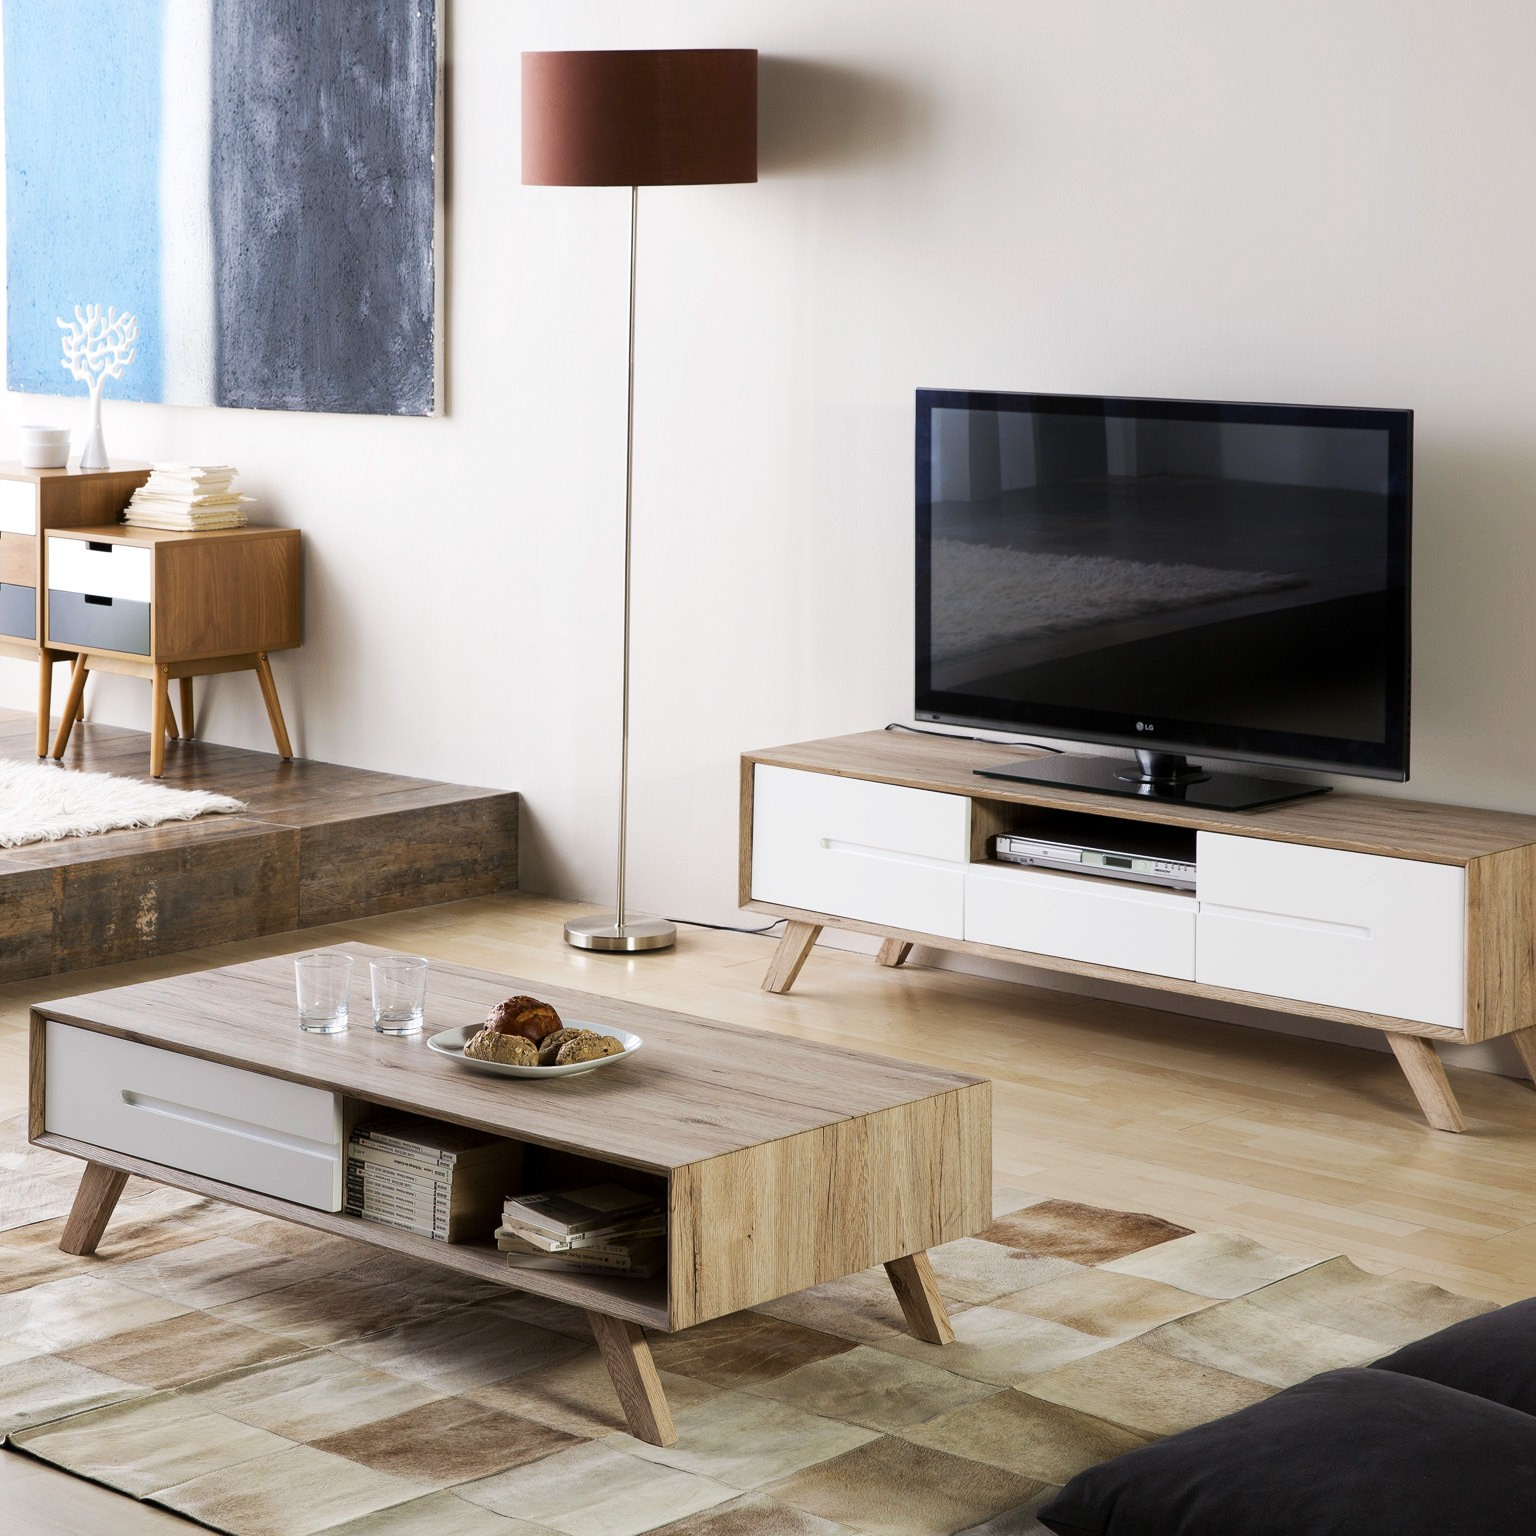 meuble tv promo best meuble tv with meuble tv promo promos de meuble tv dans le prospectus de. Black Bedroom Furniture Sets. Home Design Ideas